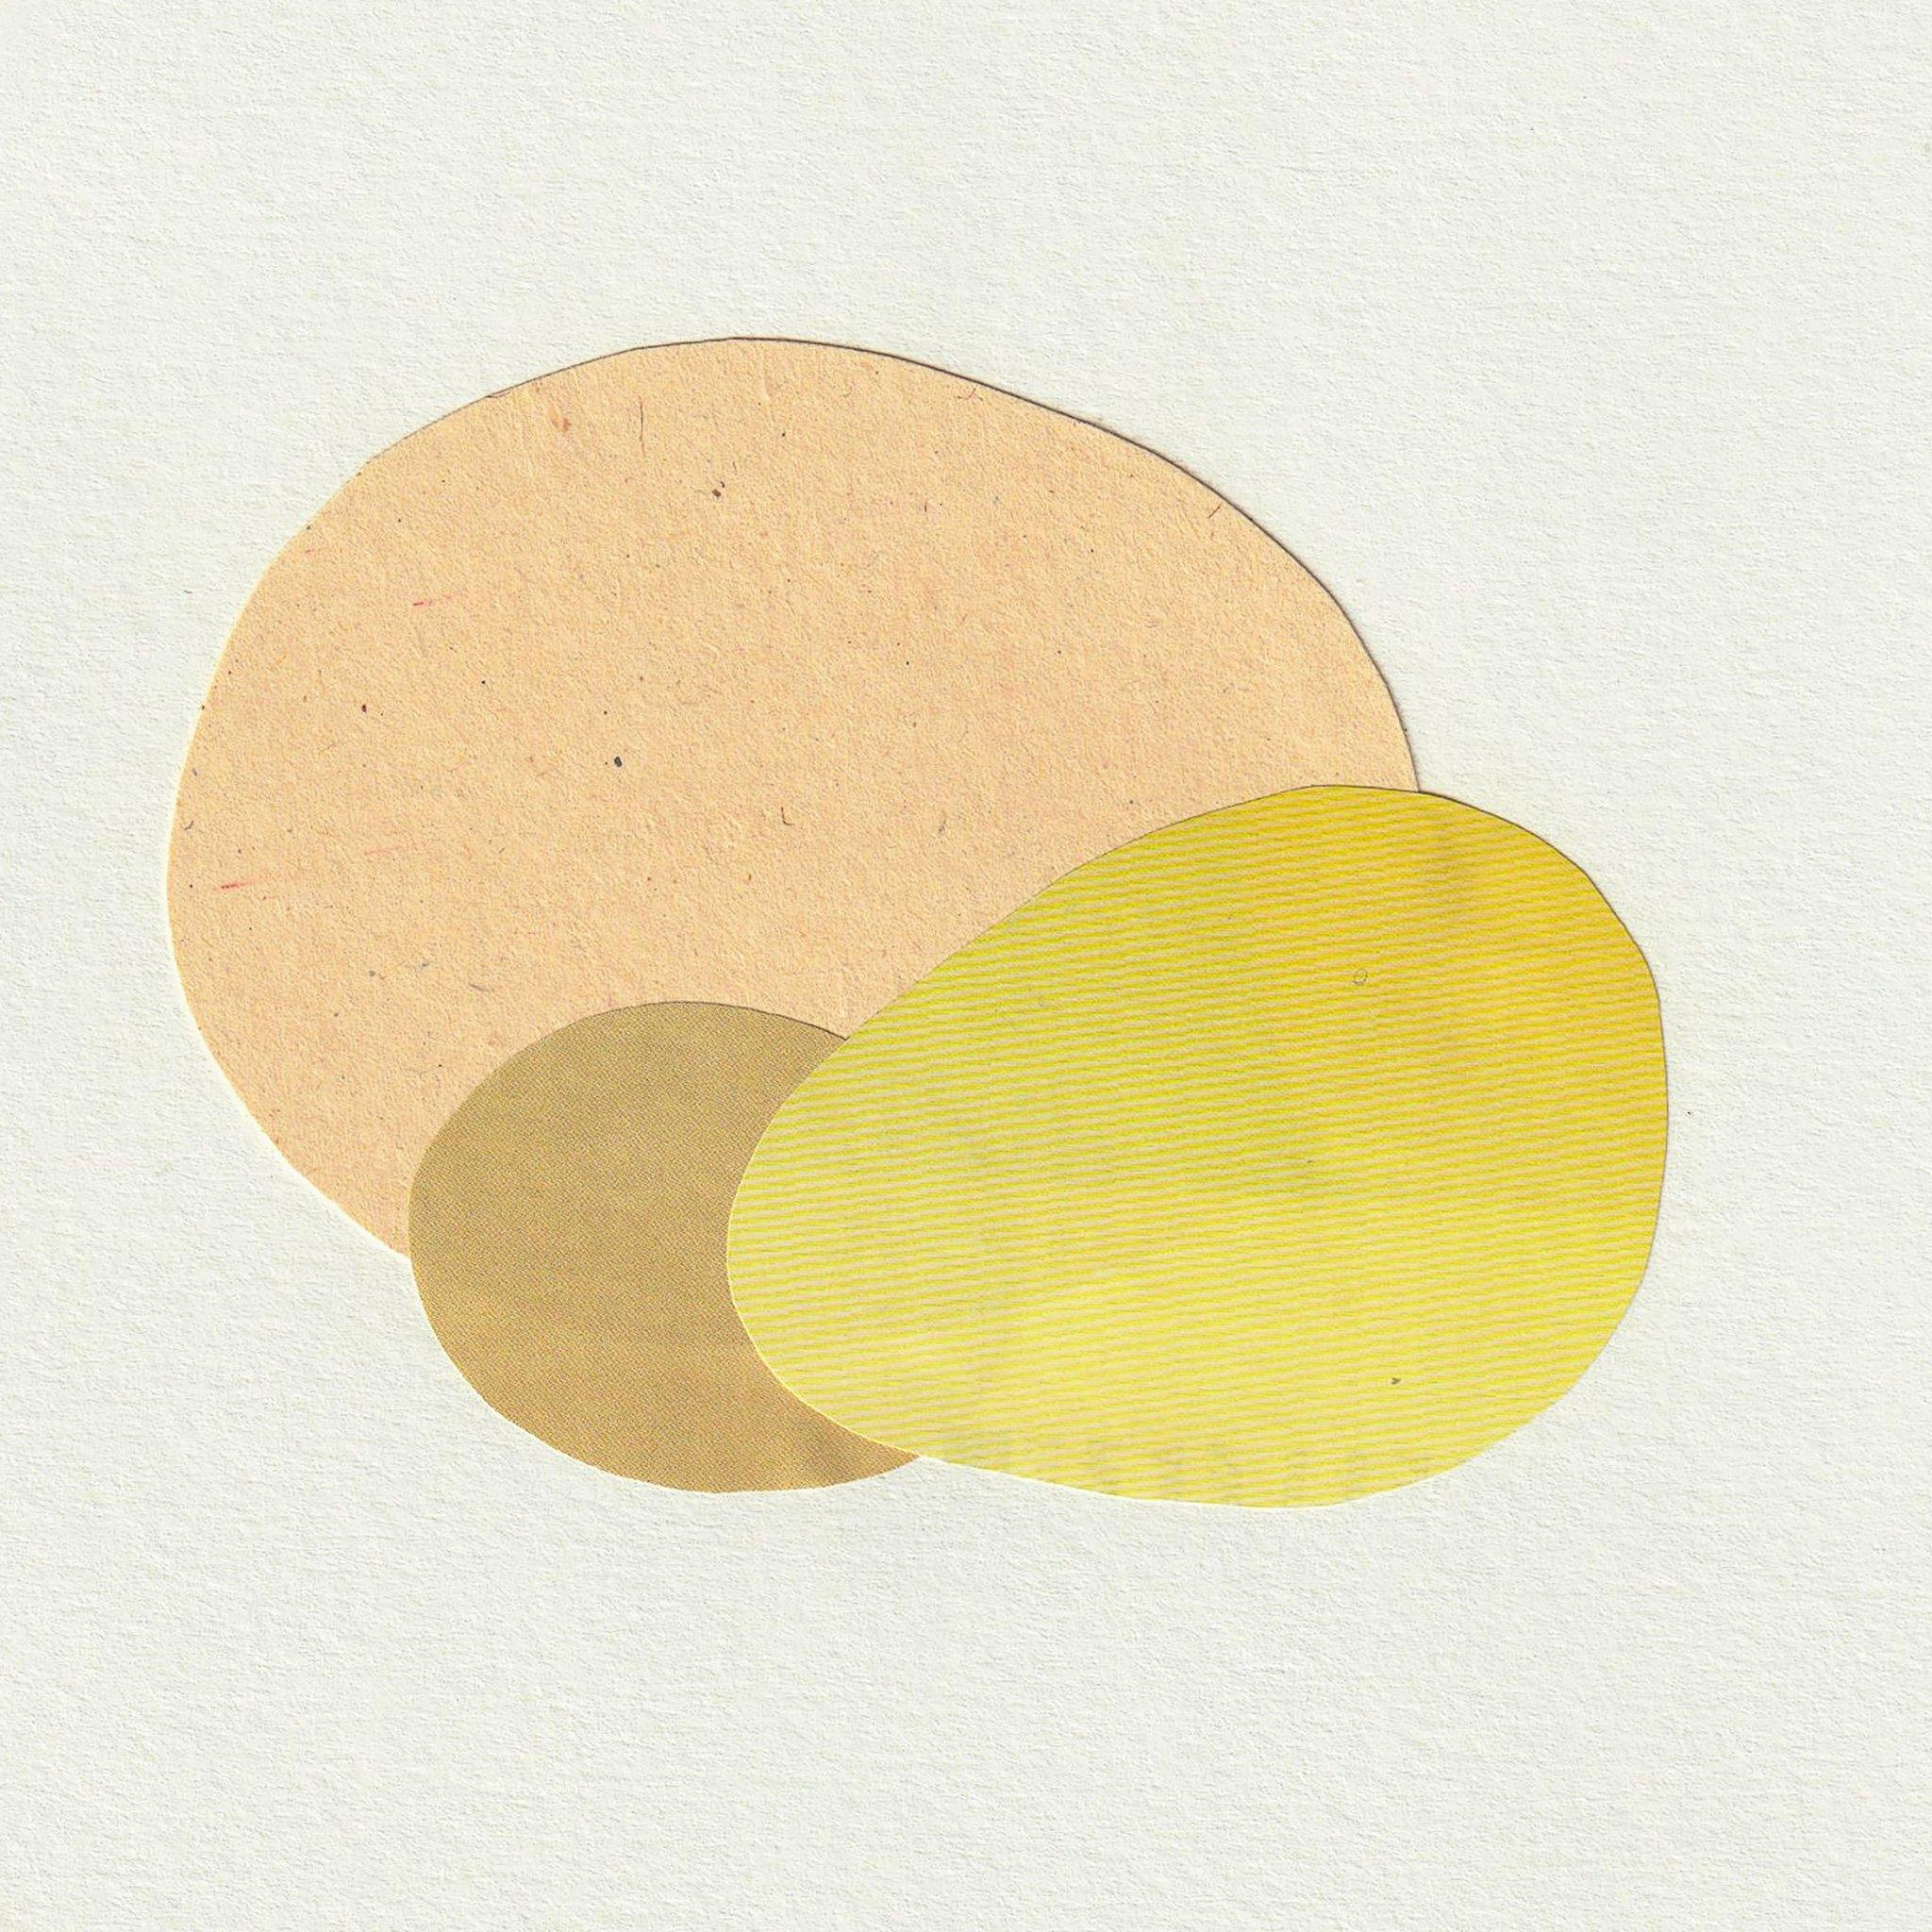 Etude du Jaune 18, Original Work on Paper  by  Etude du Jaune 18 Tappan